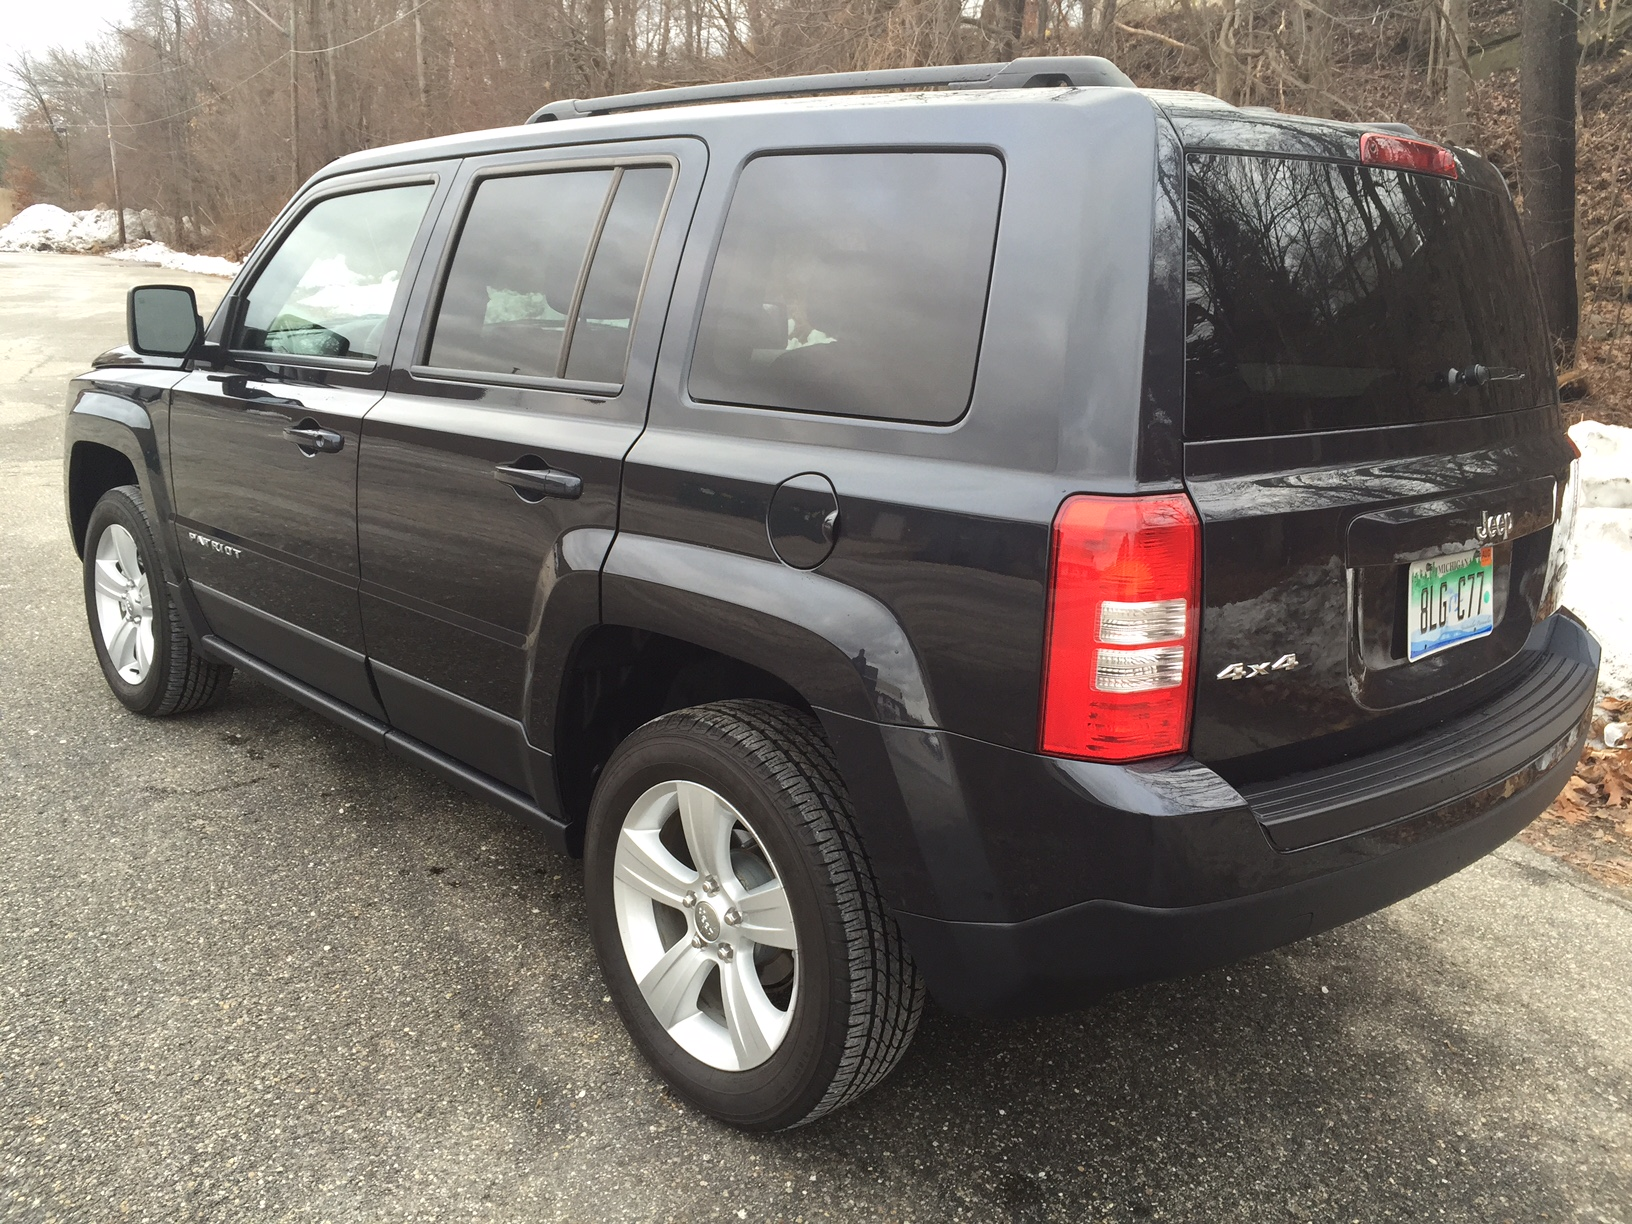 review: 2014 jeep patriot is classic jeep styling at a great price